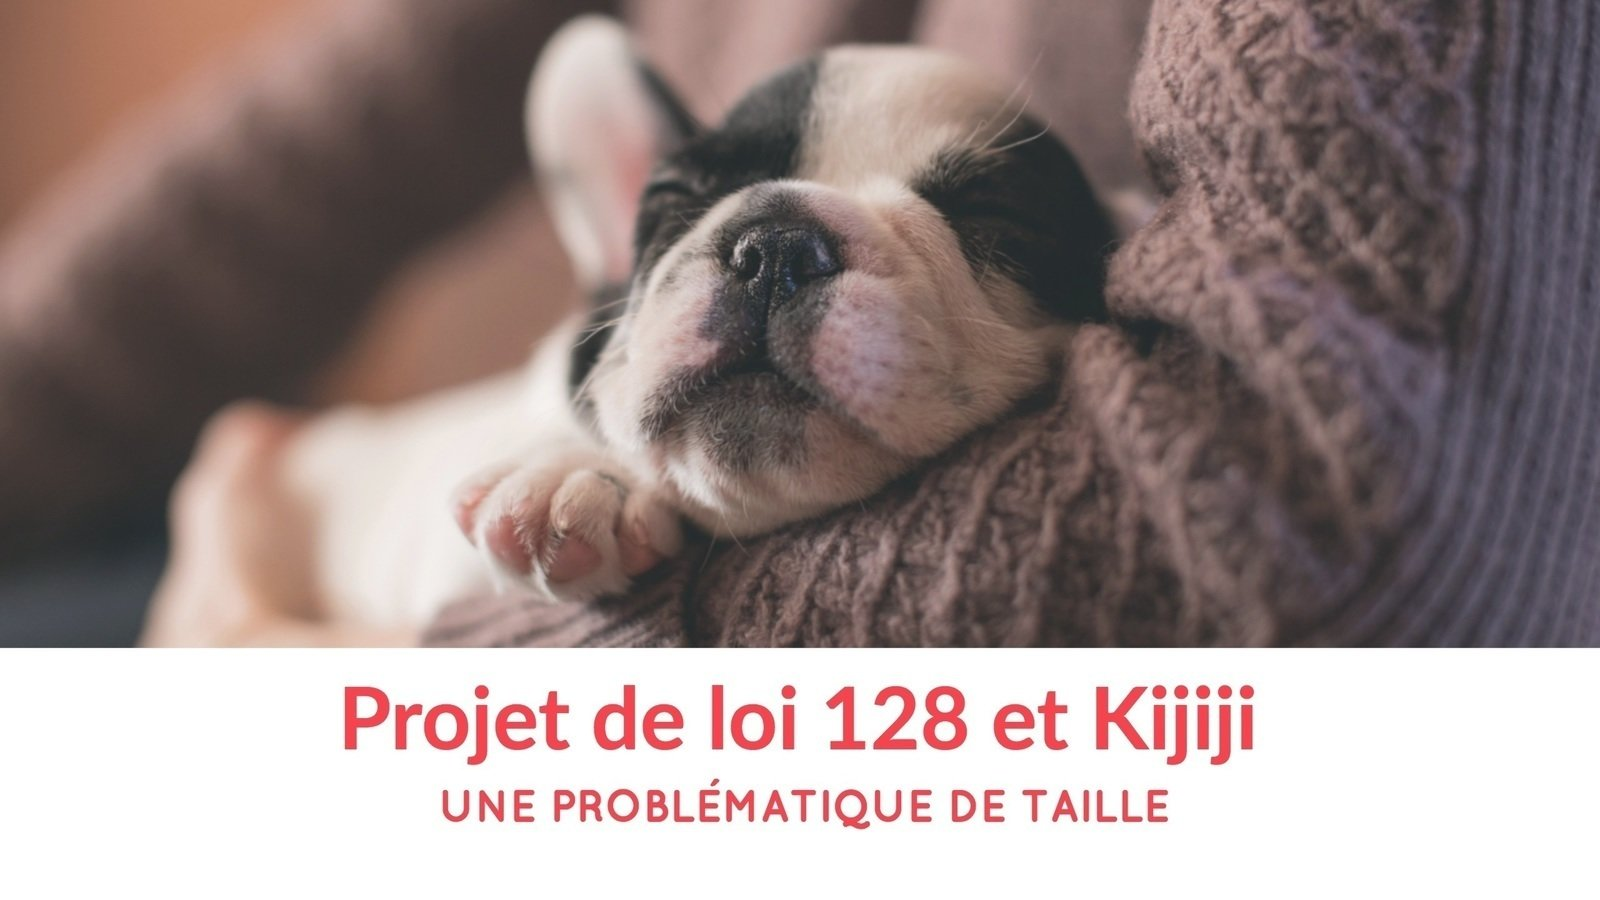 Meuble A Donner Montreal Kijiji Petition Update Chiots à Adopter Sur Kijiji Change Org